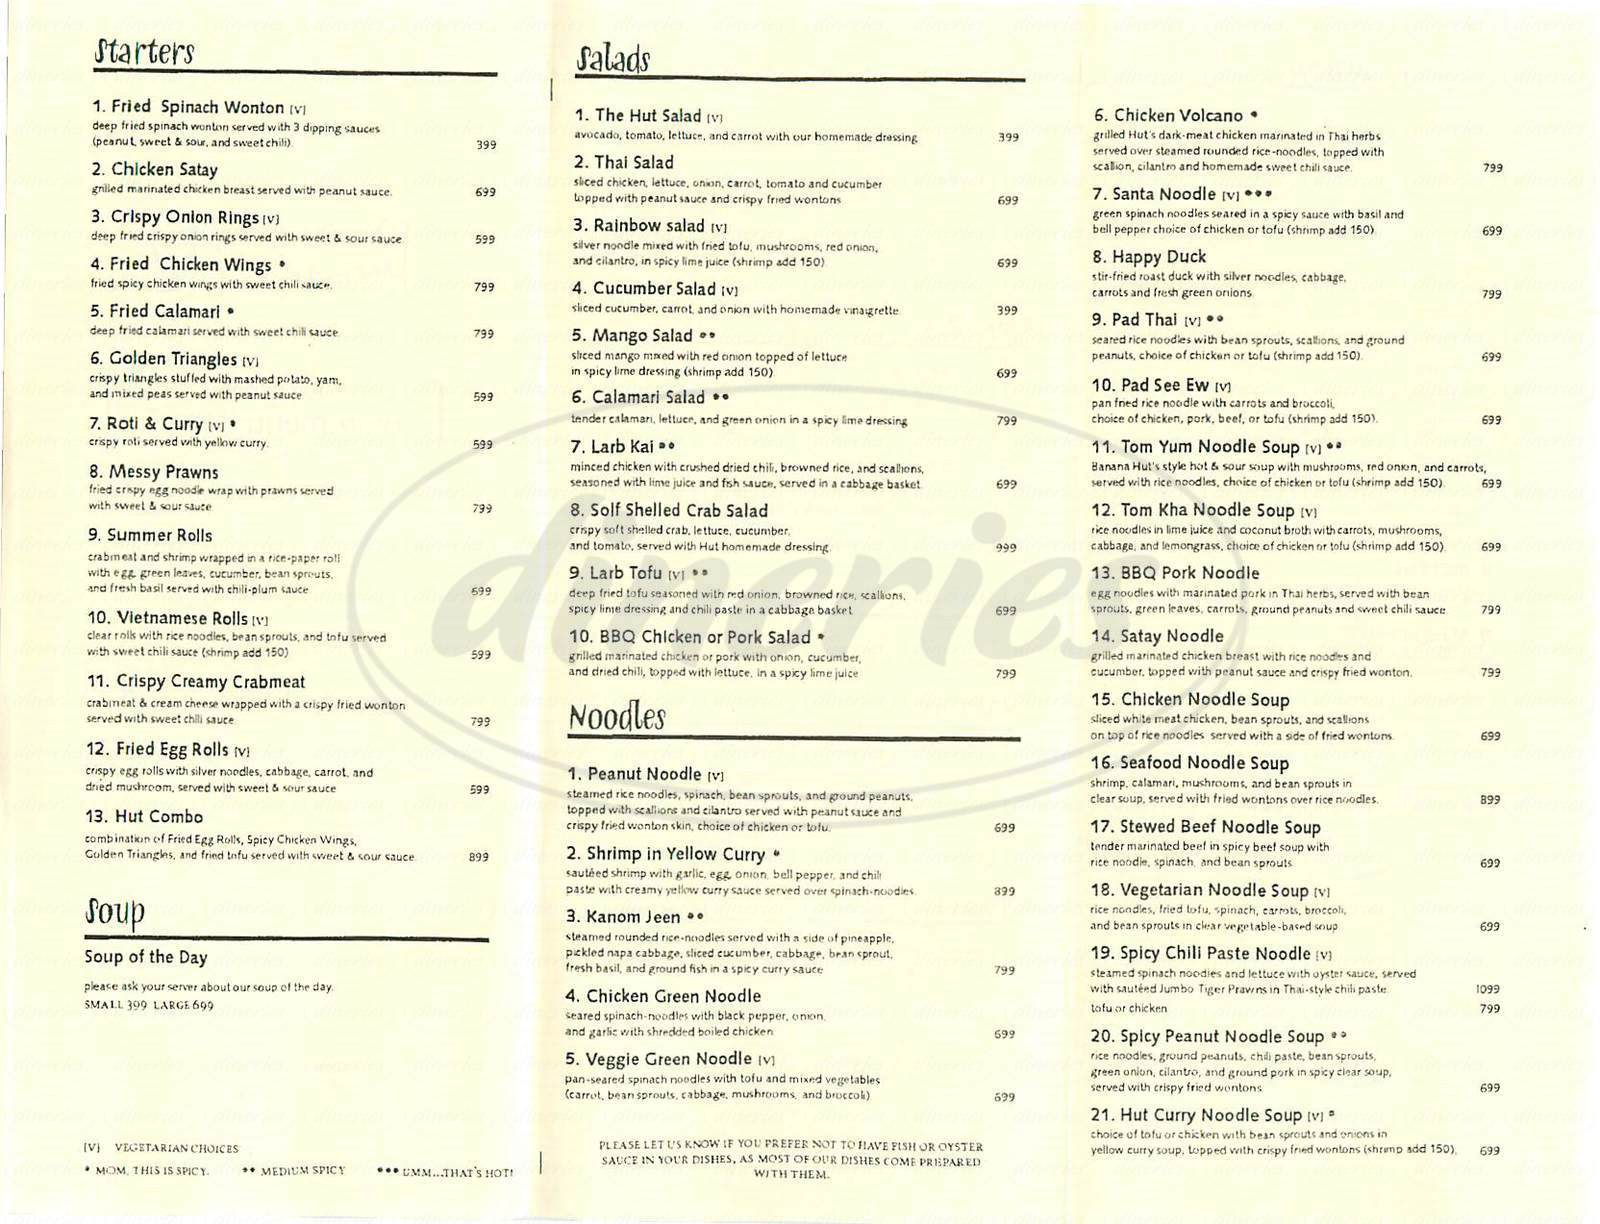 menu for Banana Hut